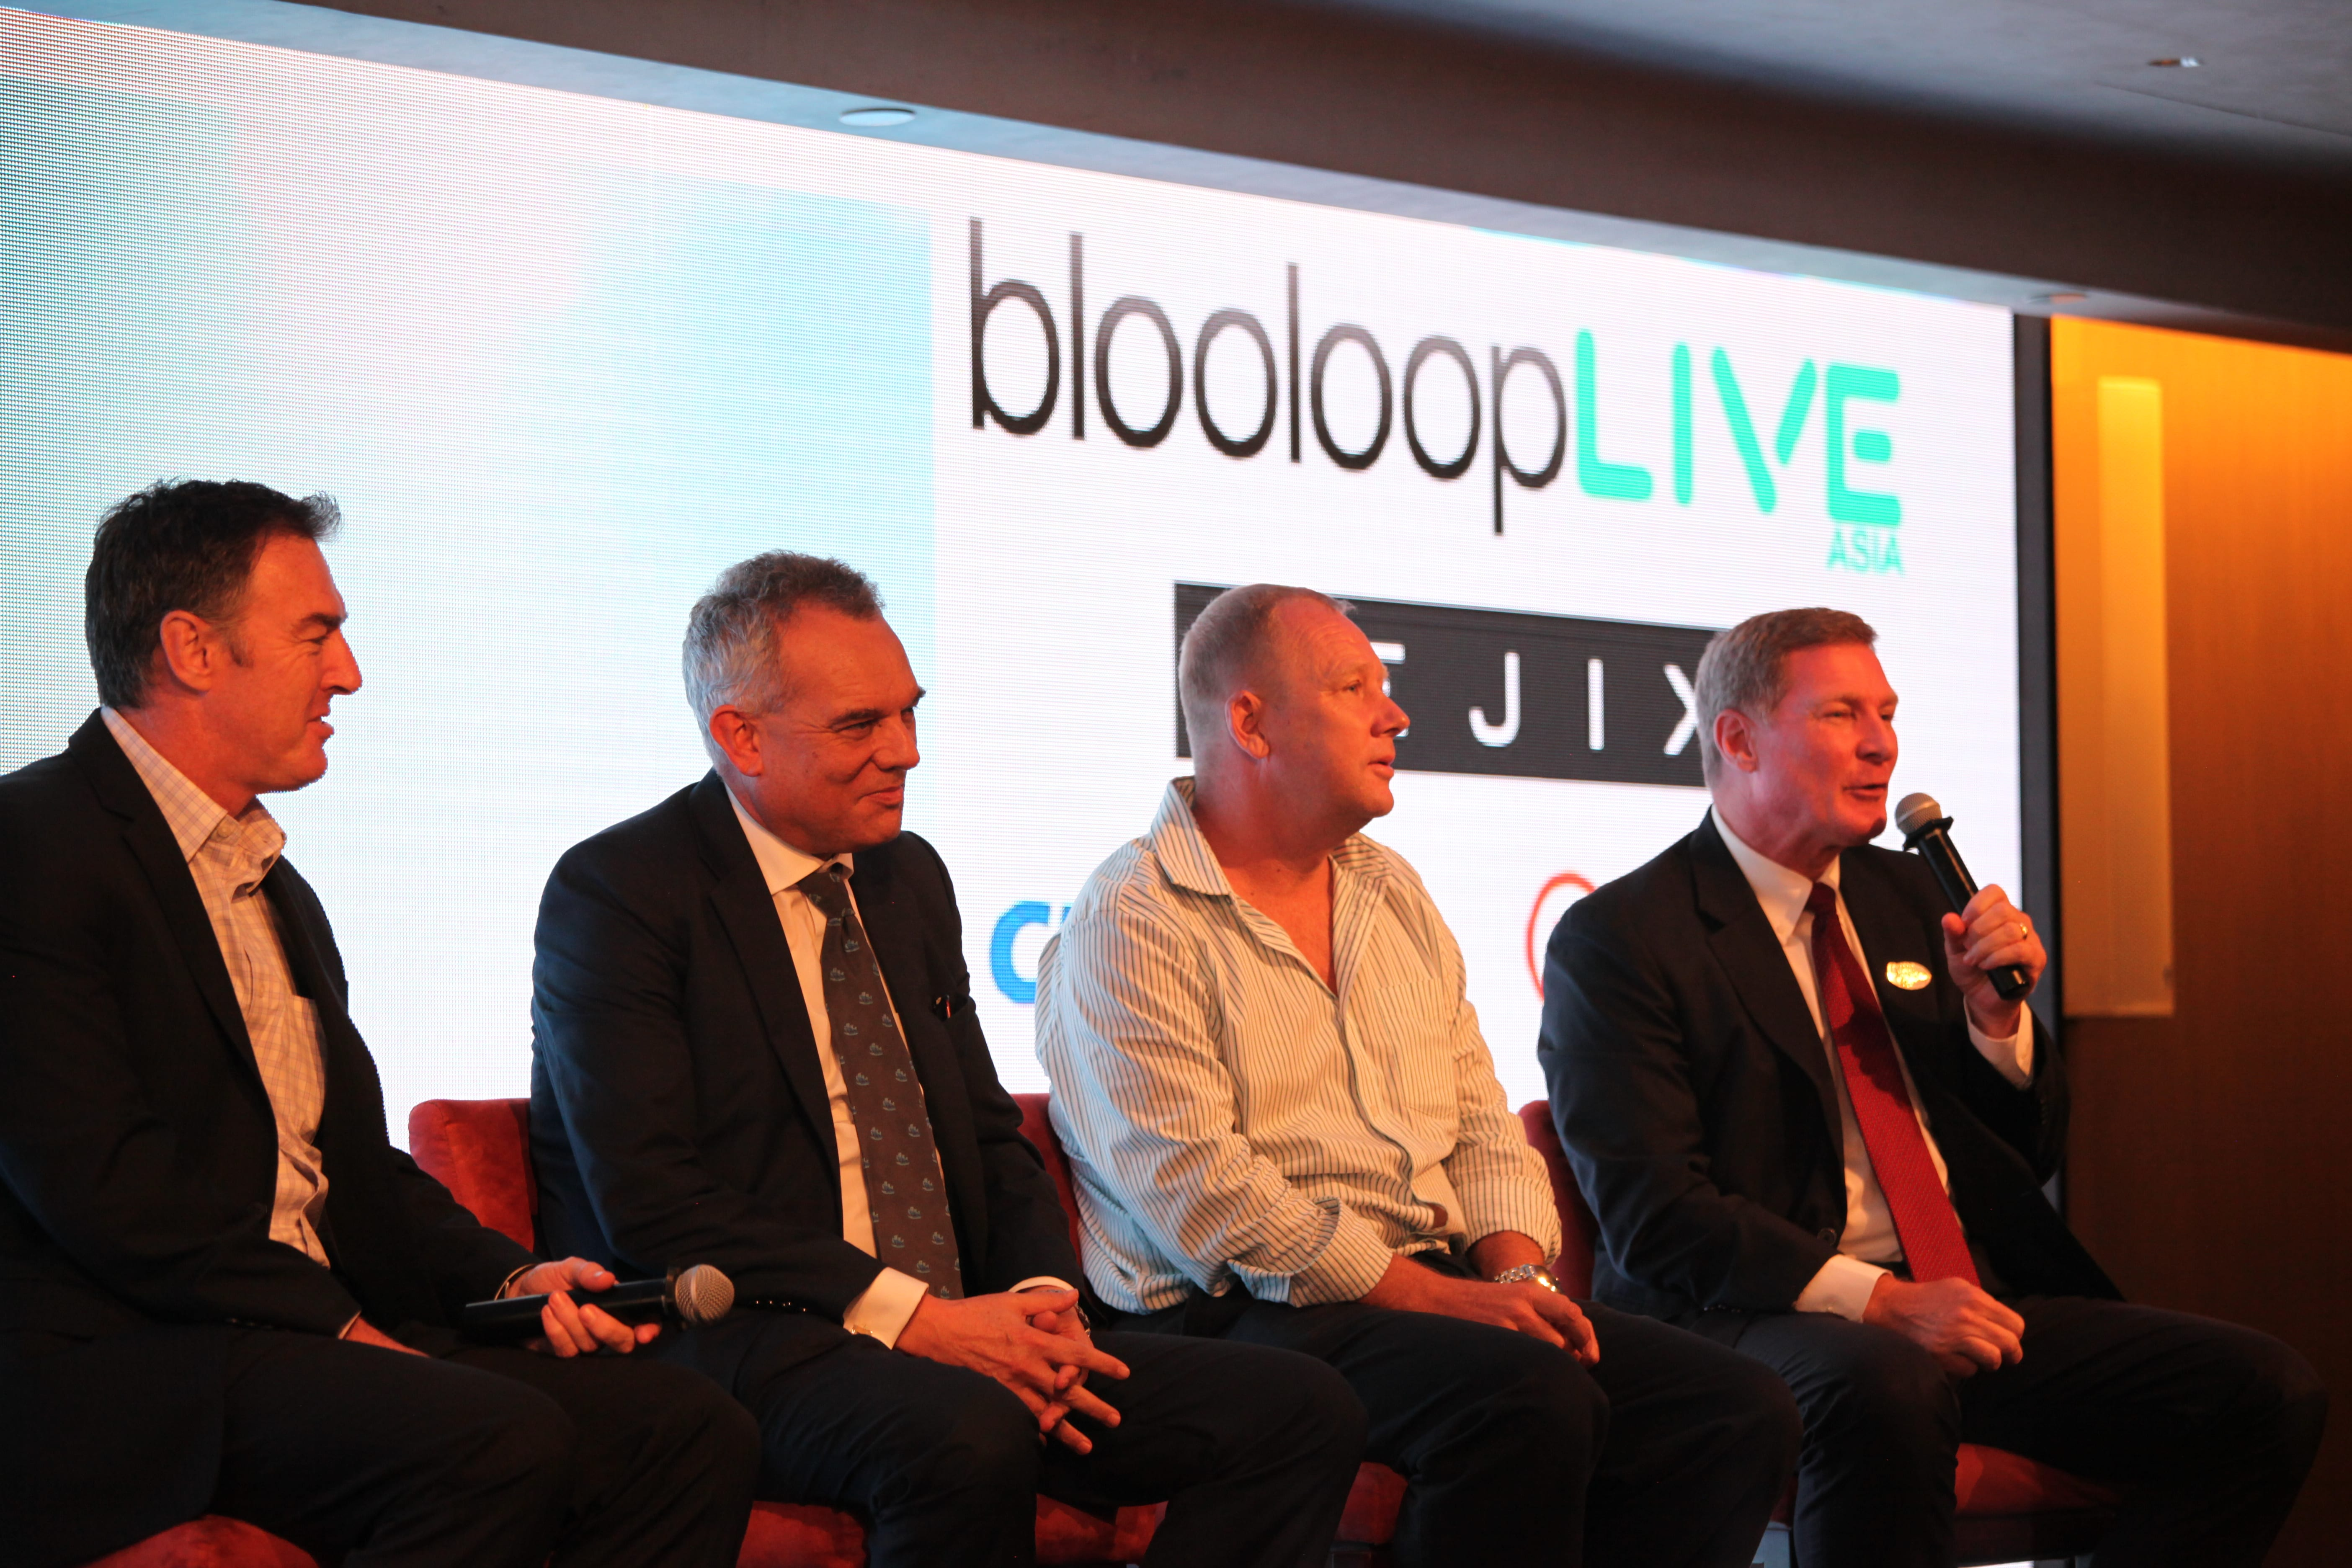 bloolooplive-asia